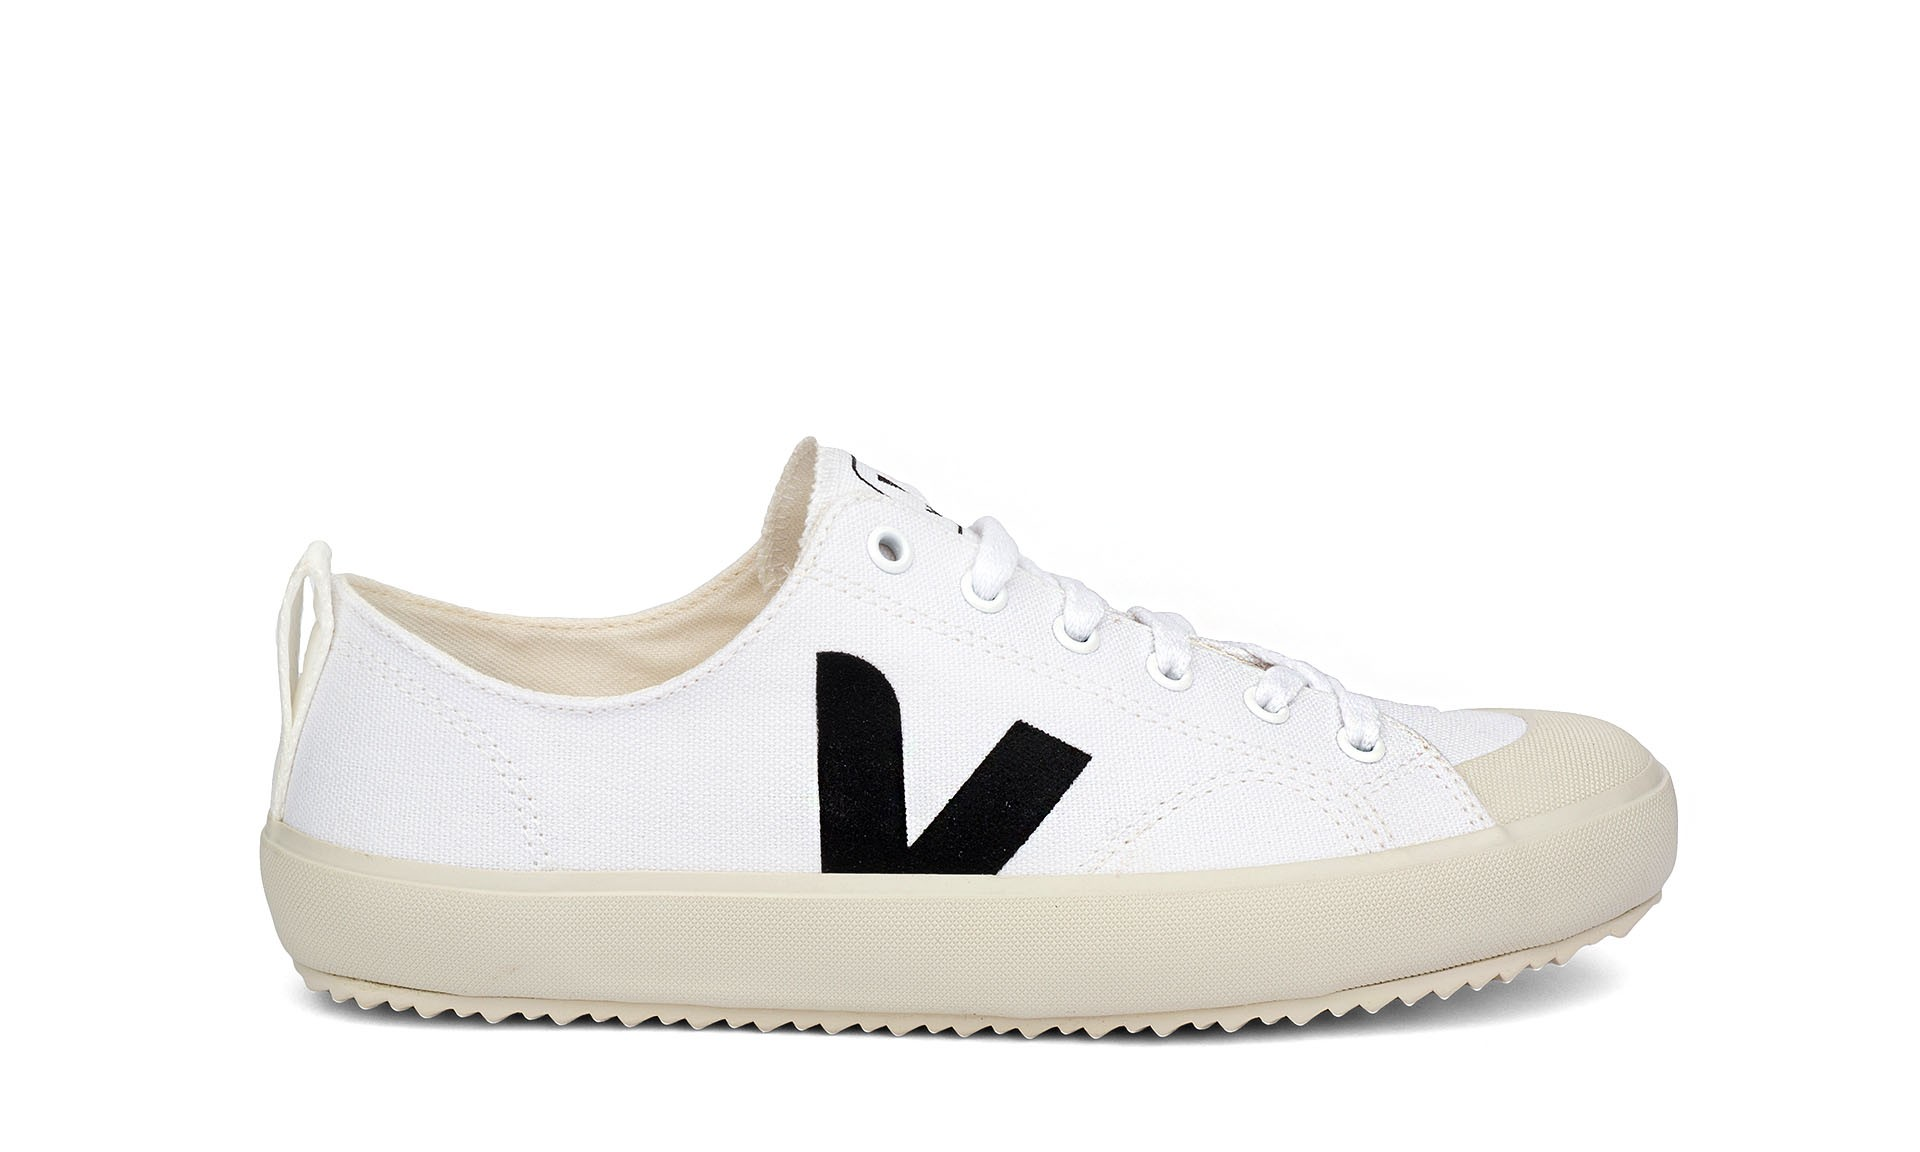 Incienso Galleta Perth Blackborough  Vegan Sneaker | VEJA Nova Canvas White Black | avesu VEGAN SHOES